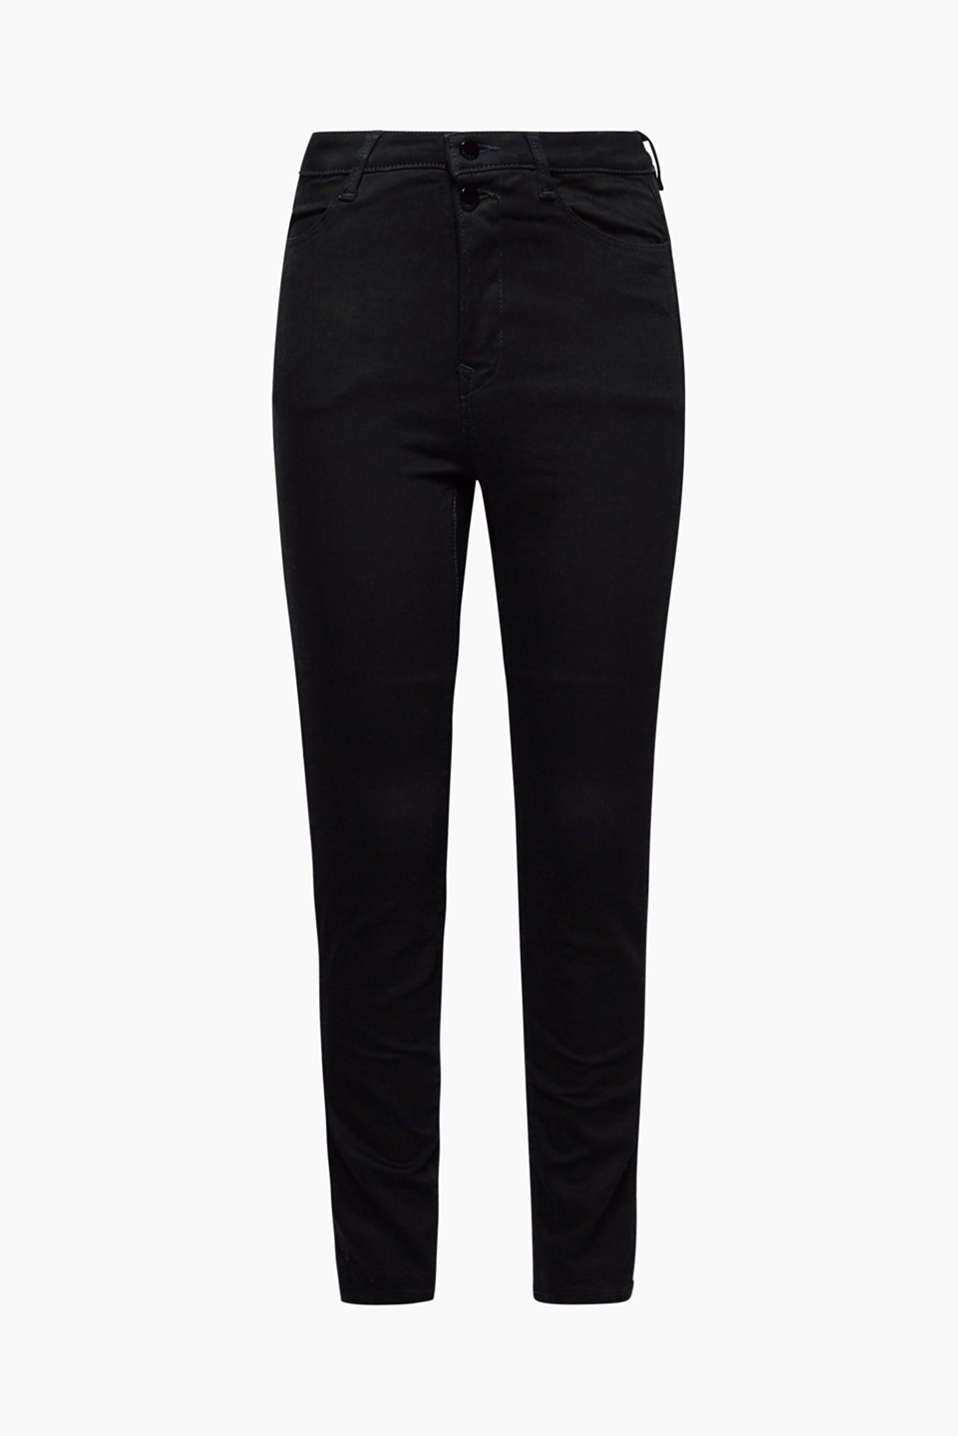 They create a sensational silhouette: stretch jeans with a high waistband and shaping effect.